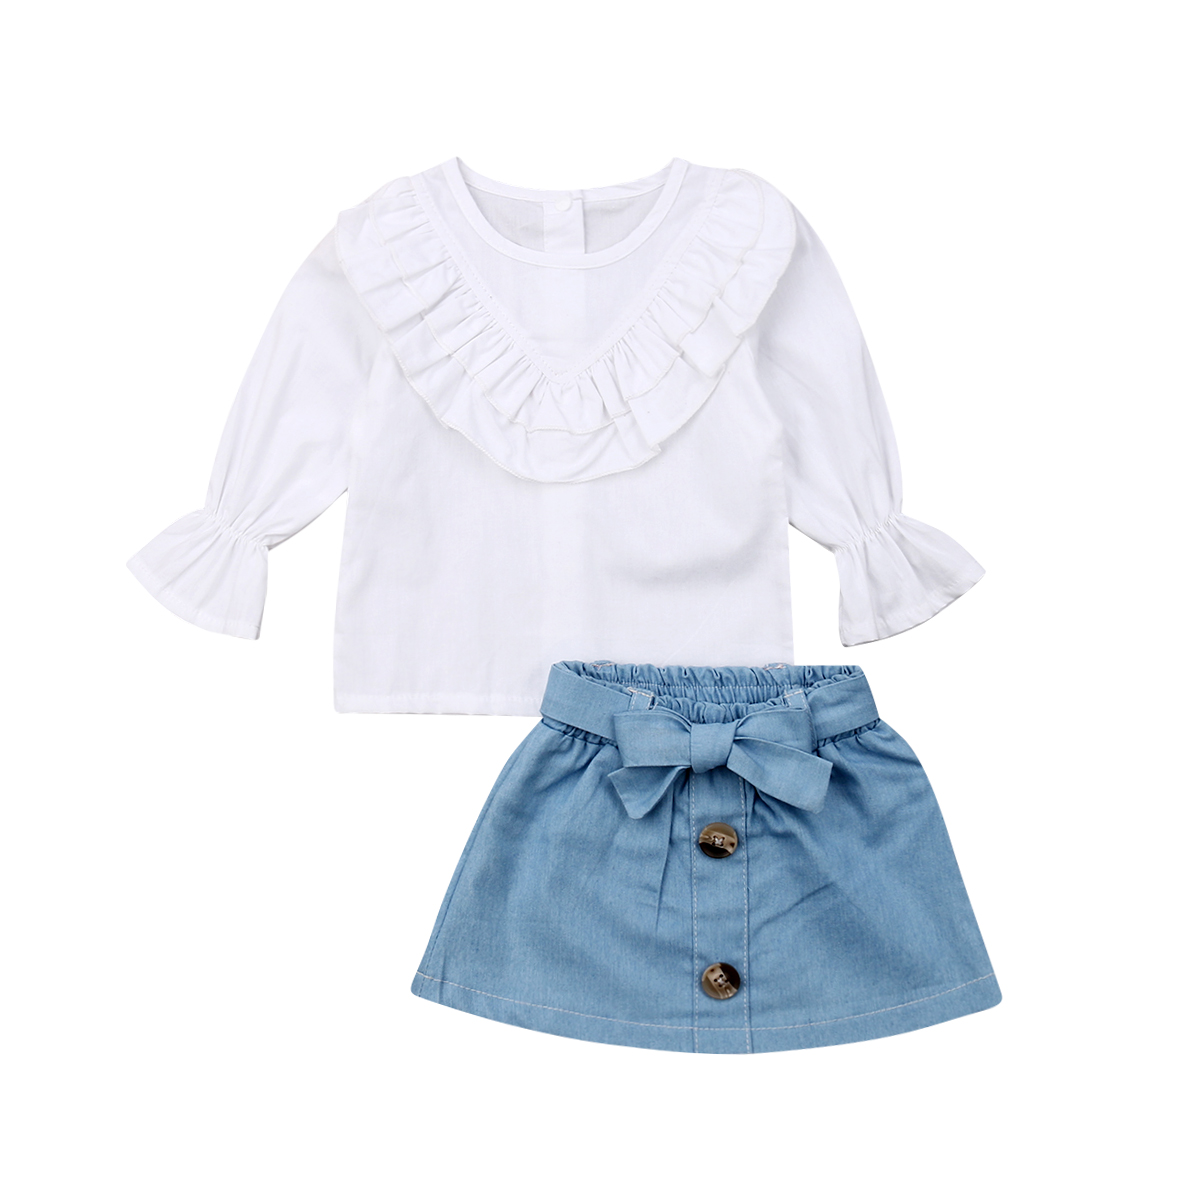 2PCS Toddler Kids Baby Girl Summer Clothes Plaid Tops+Denim Skirt Dres Outfits